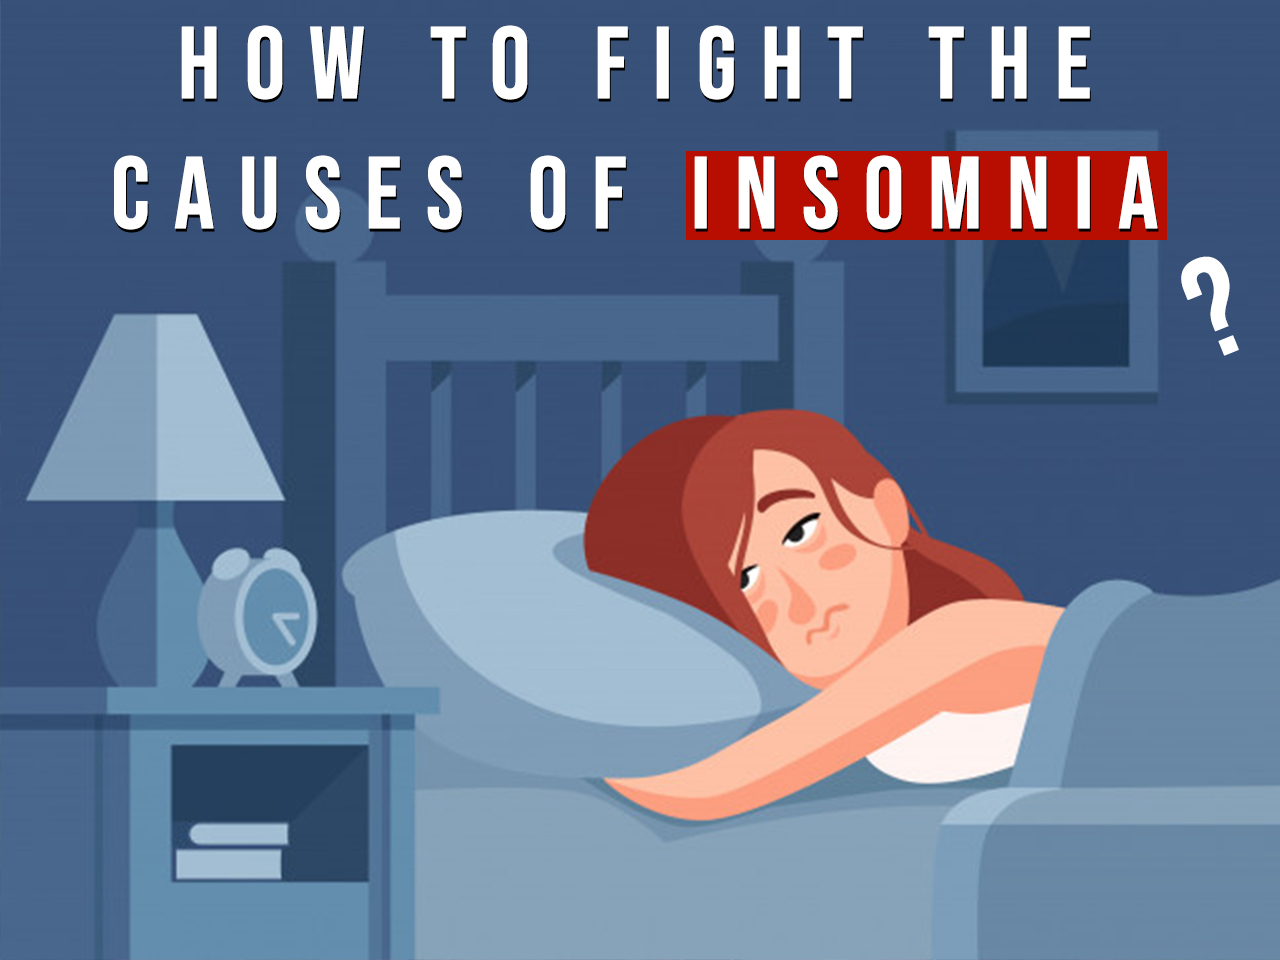 Fight-the-Causes-of-Insomnia